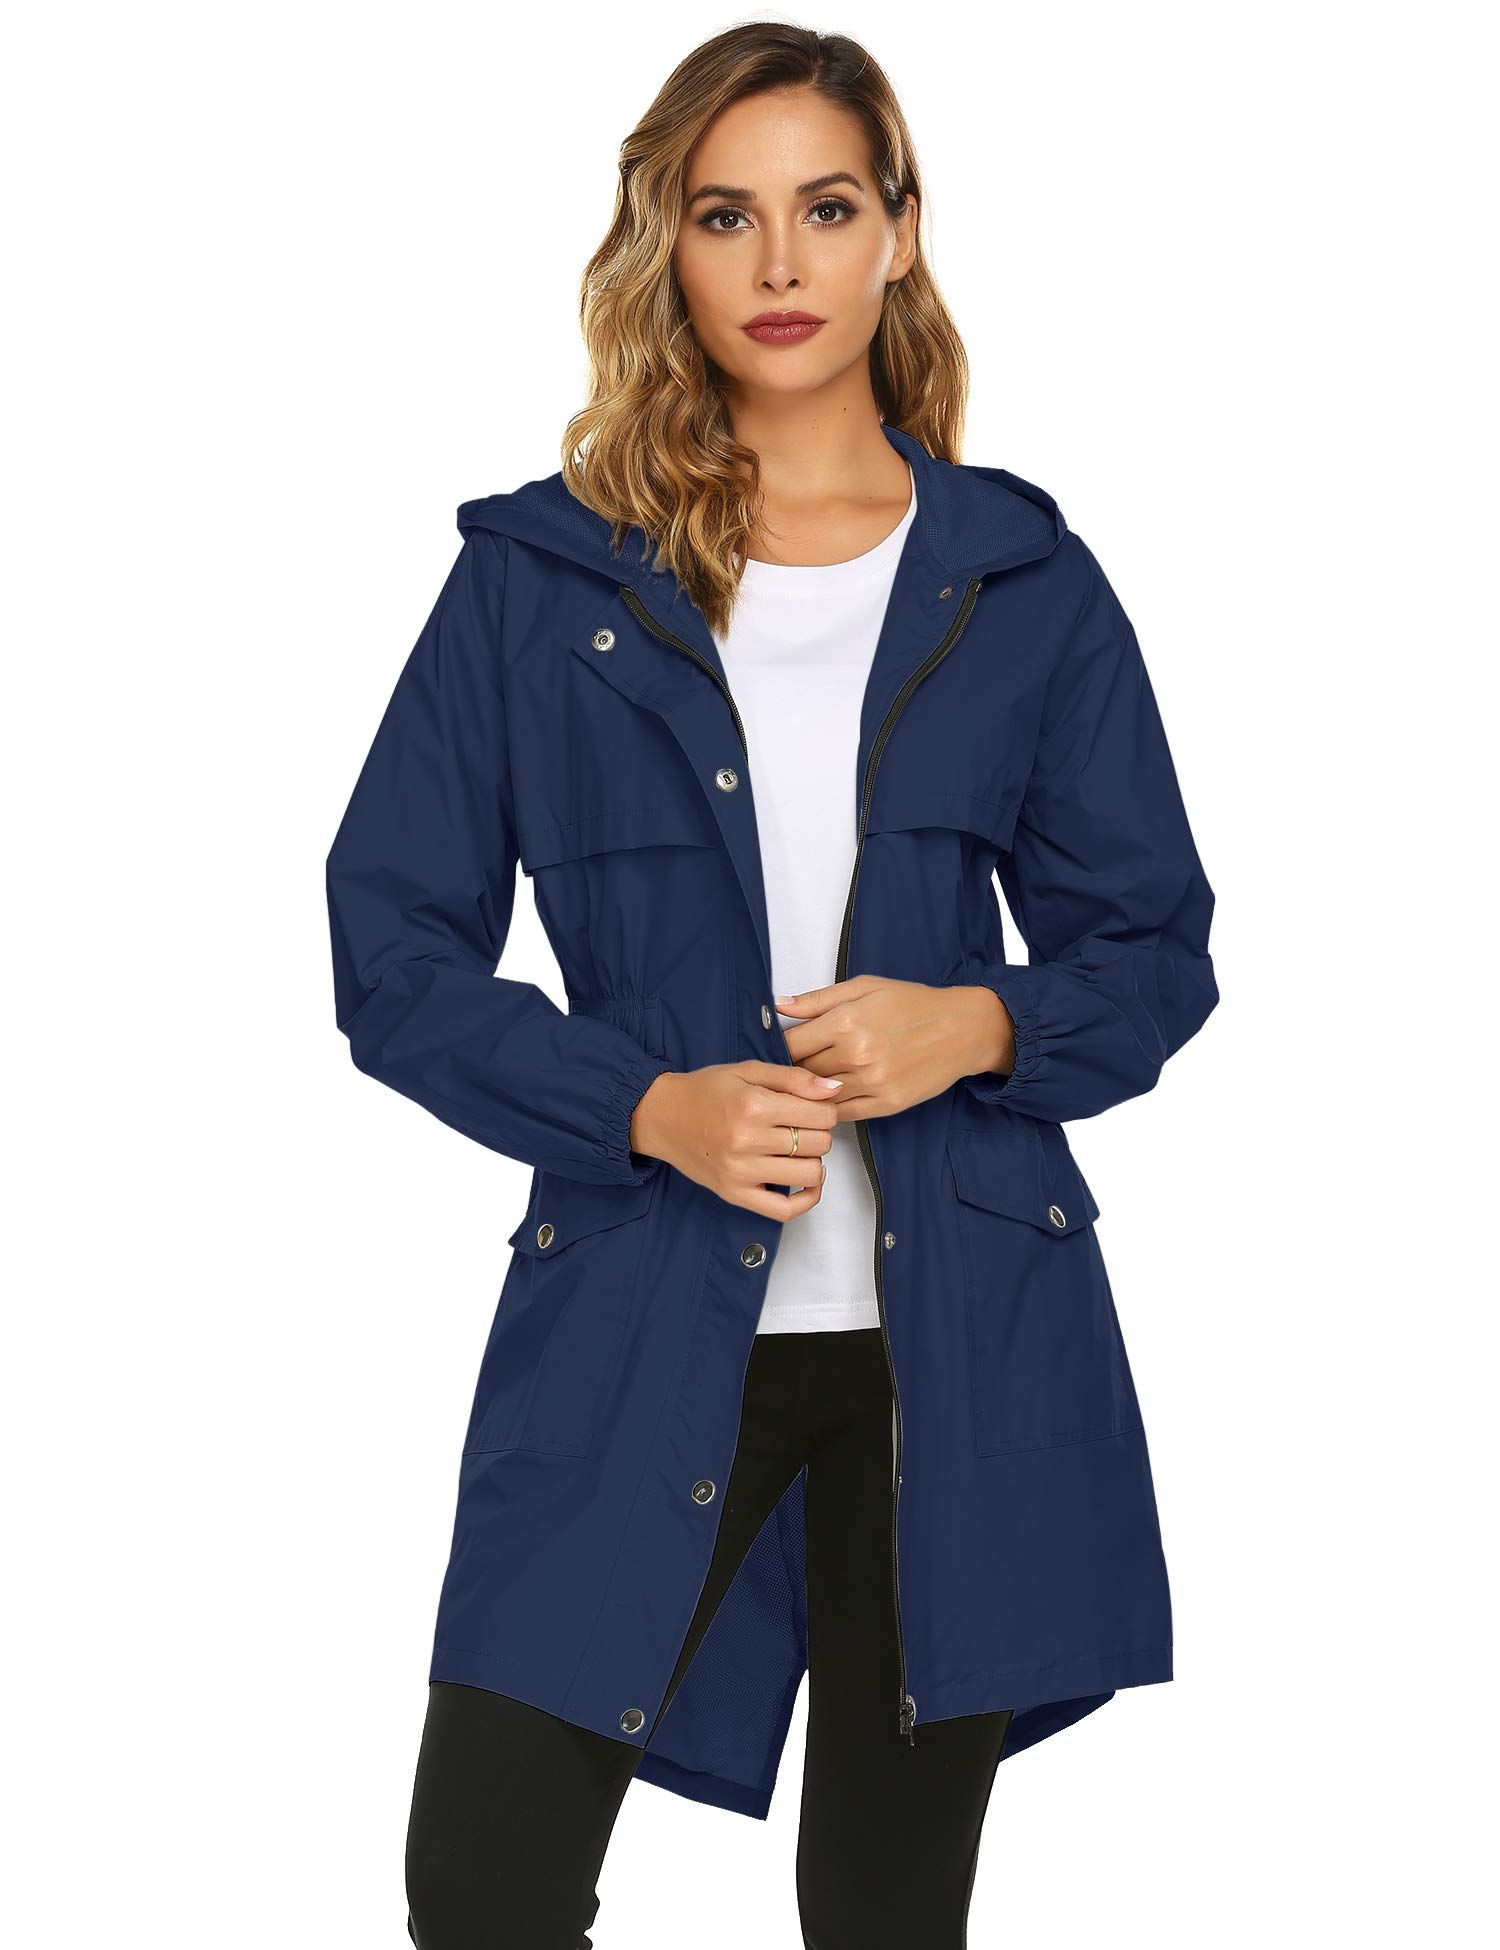 Avoogue Trench Coats for Women, Lightweight Hooded